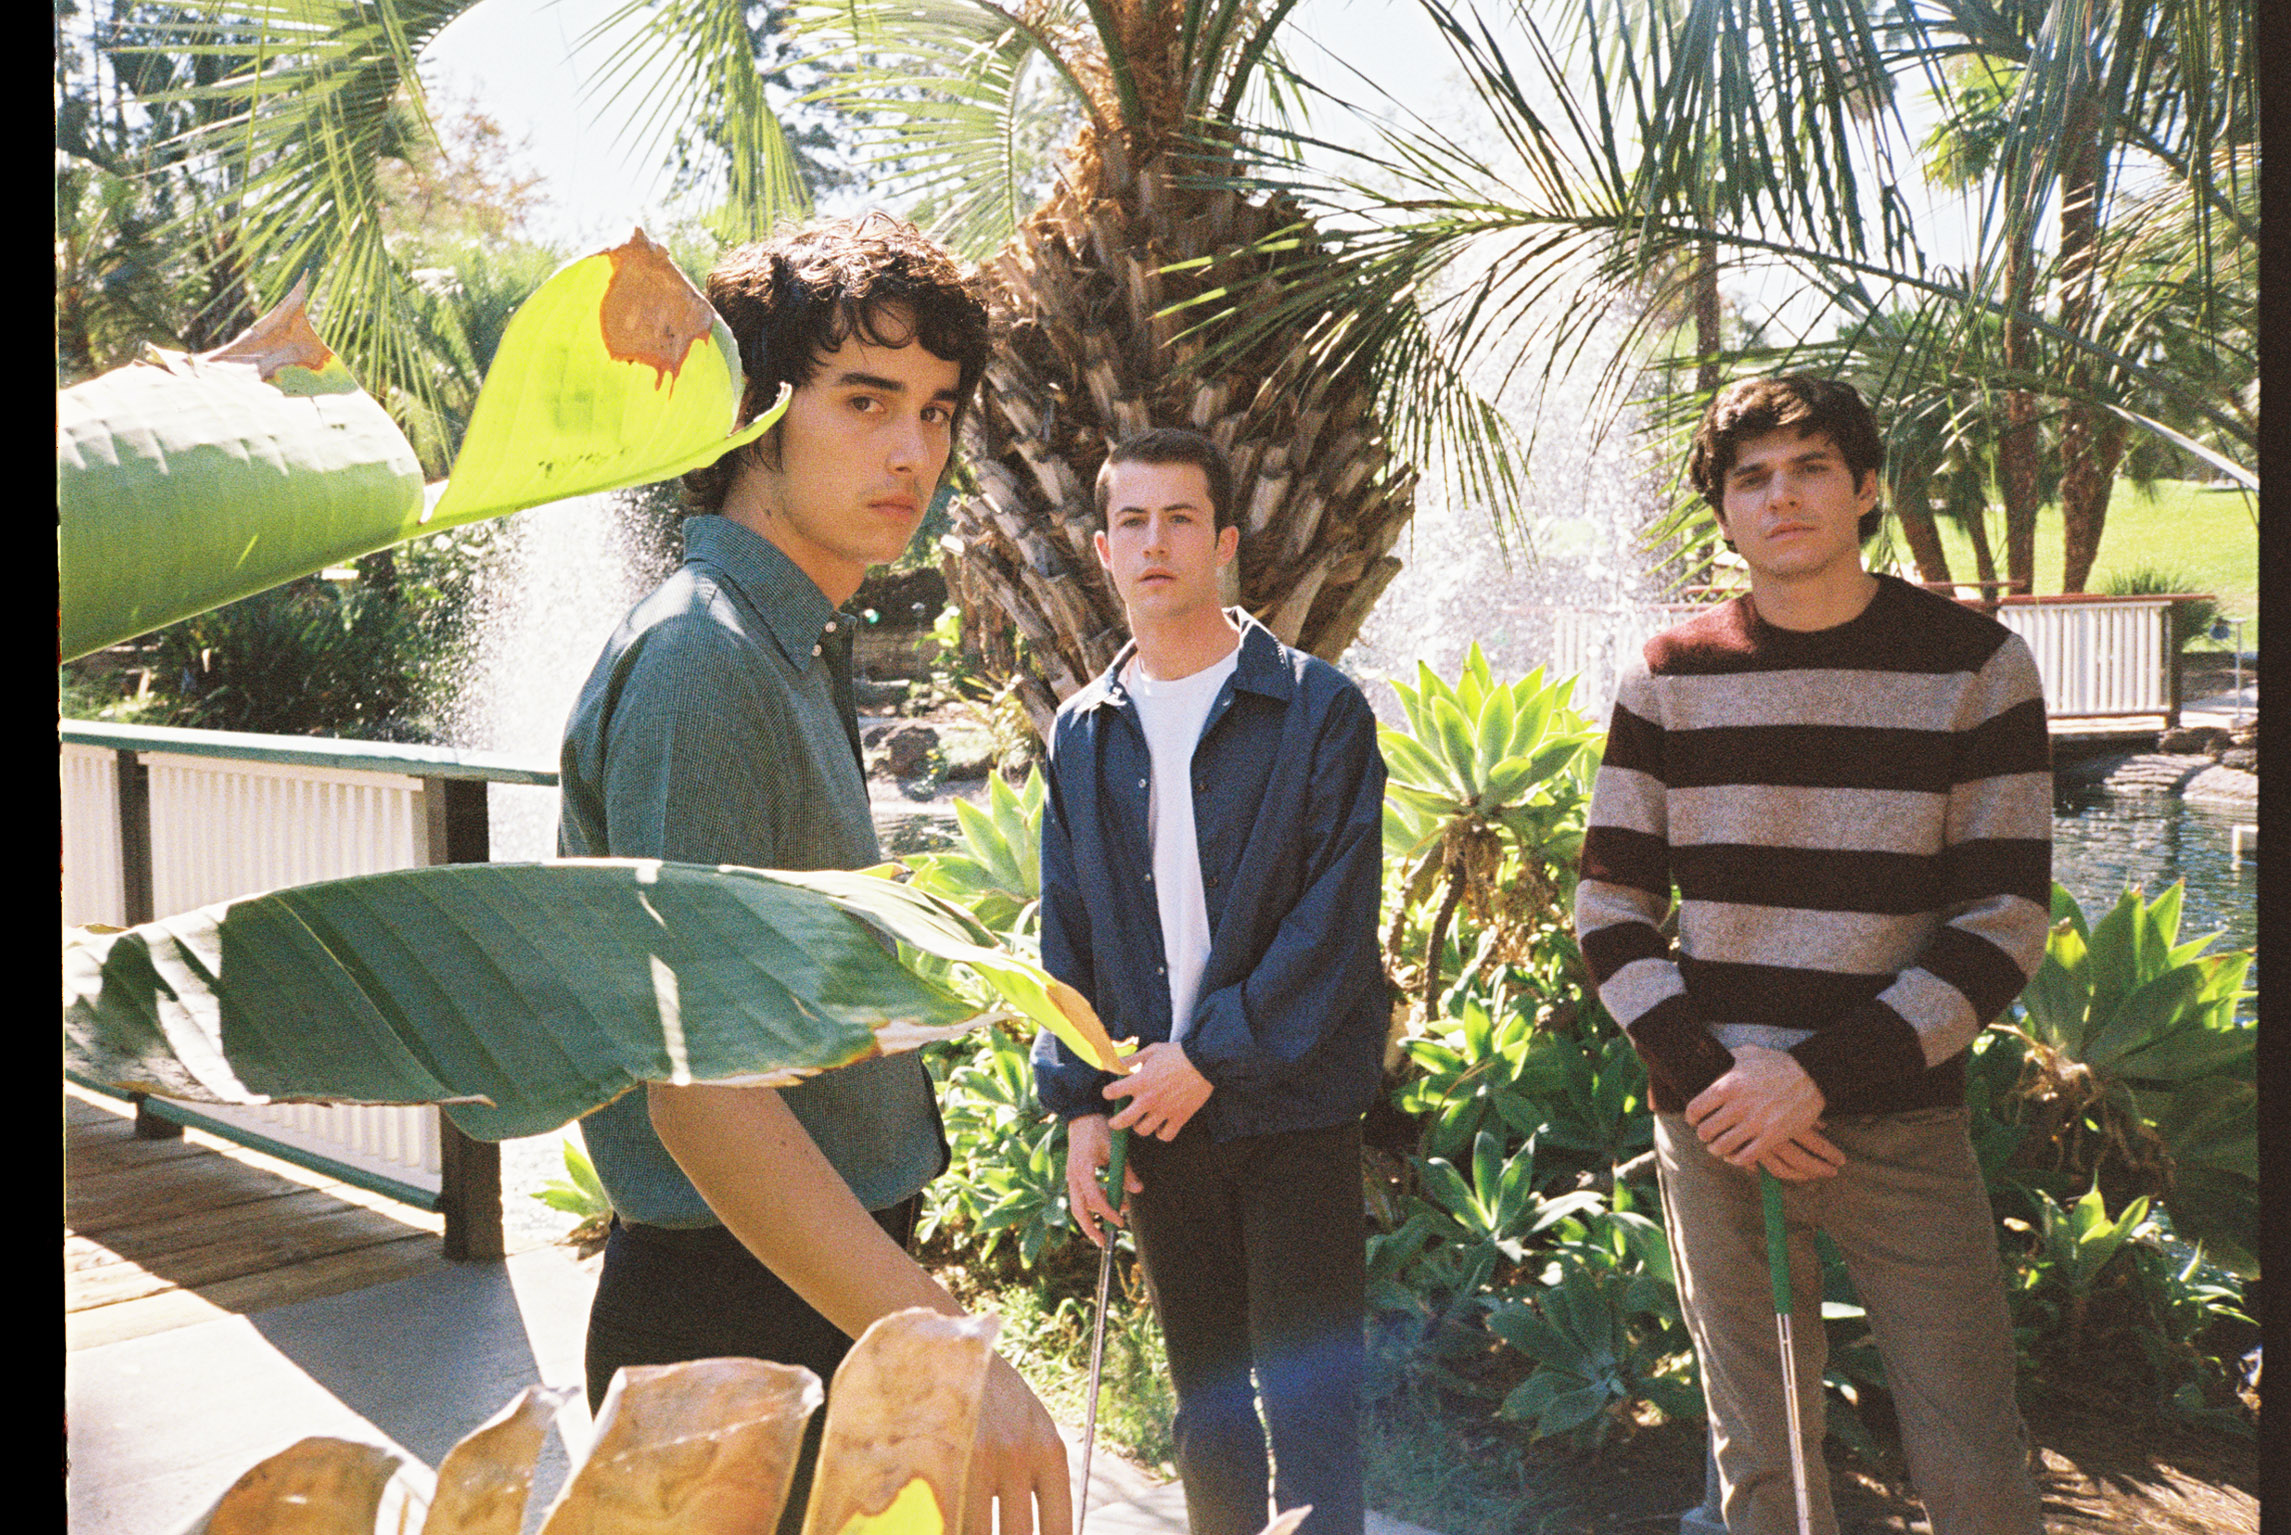 Wallows-2019-2-credit-Alexis-Jade-Gross